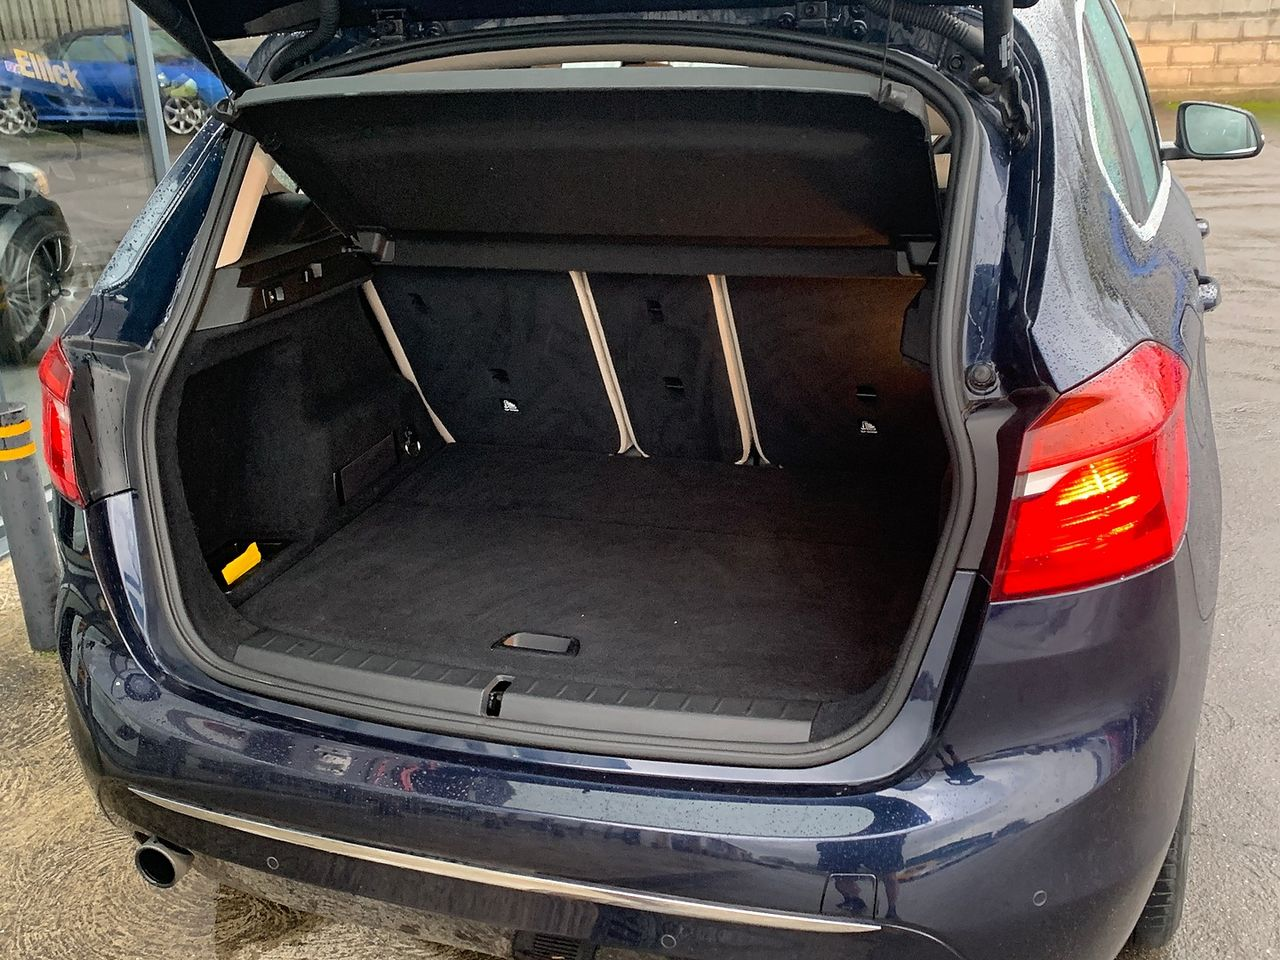 2015 BMW 2 Series Active Tourer 218i Luxury - Picture 6 of 9